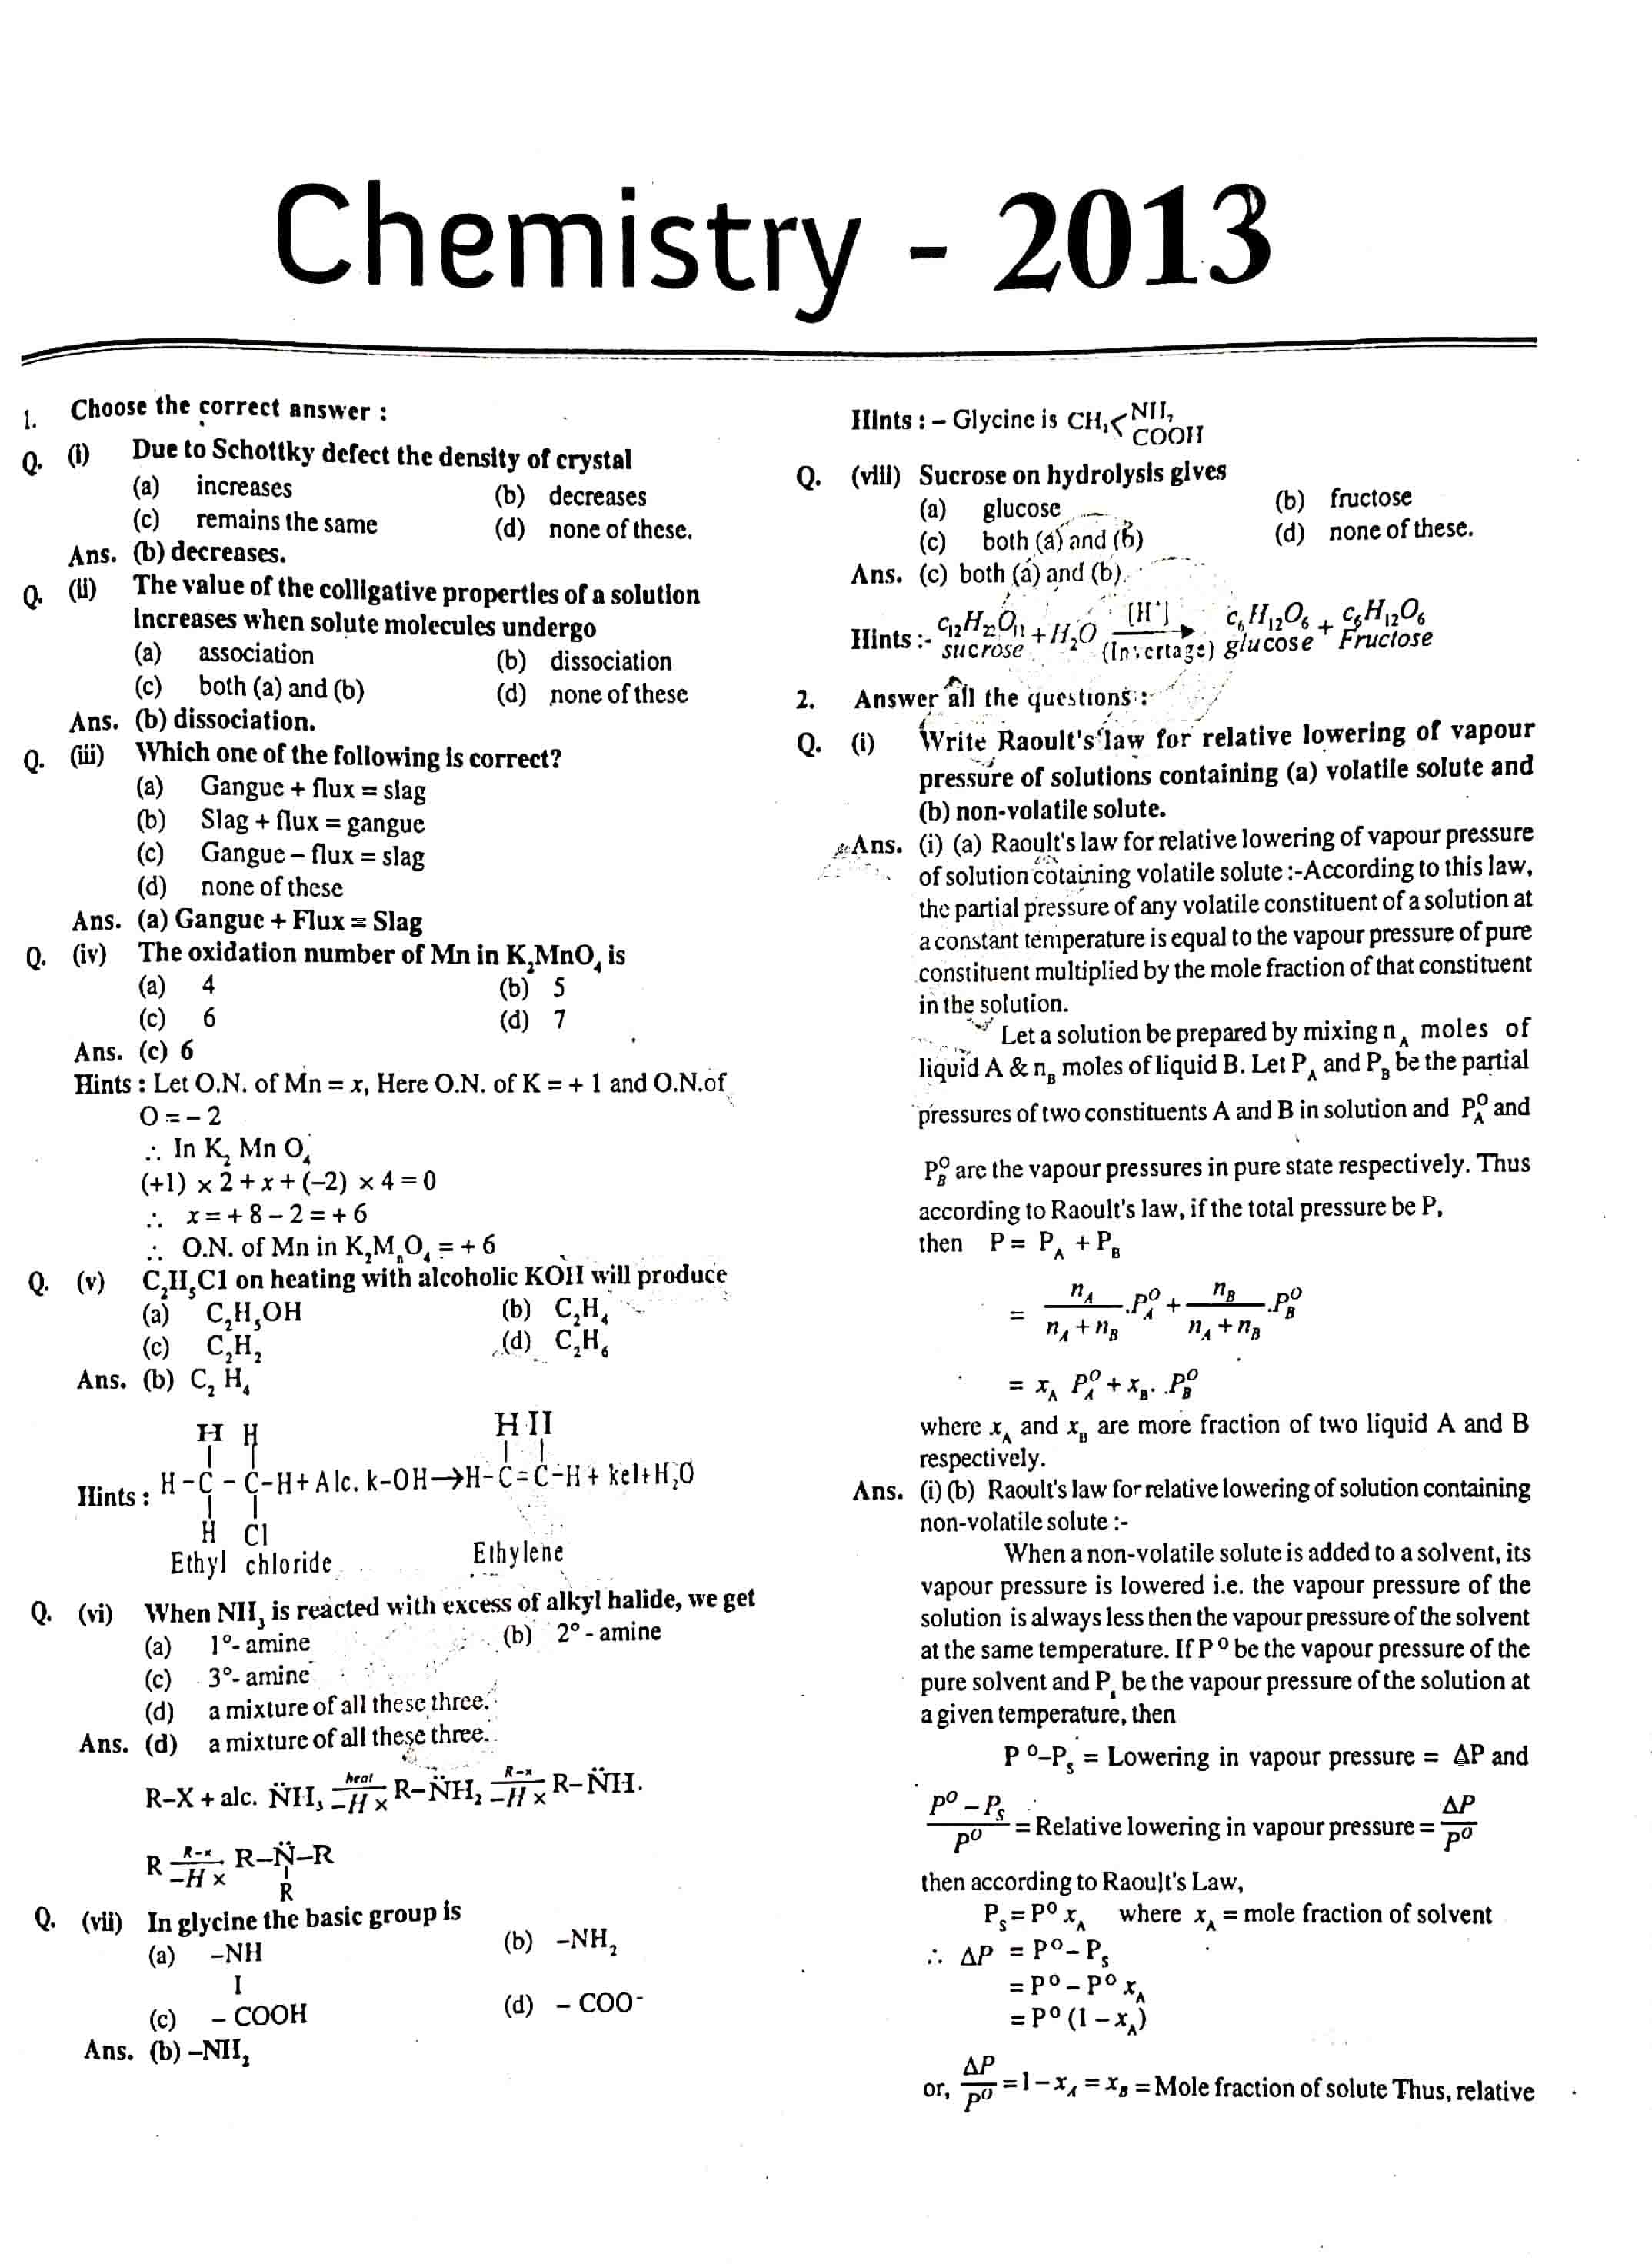 JAC Class 12 chemistry 2013 Question Paper 01